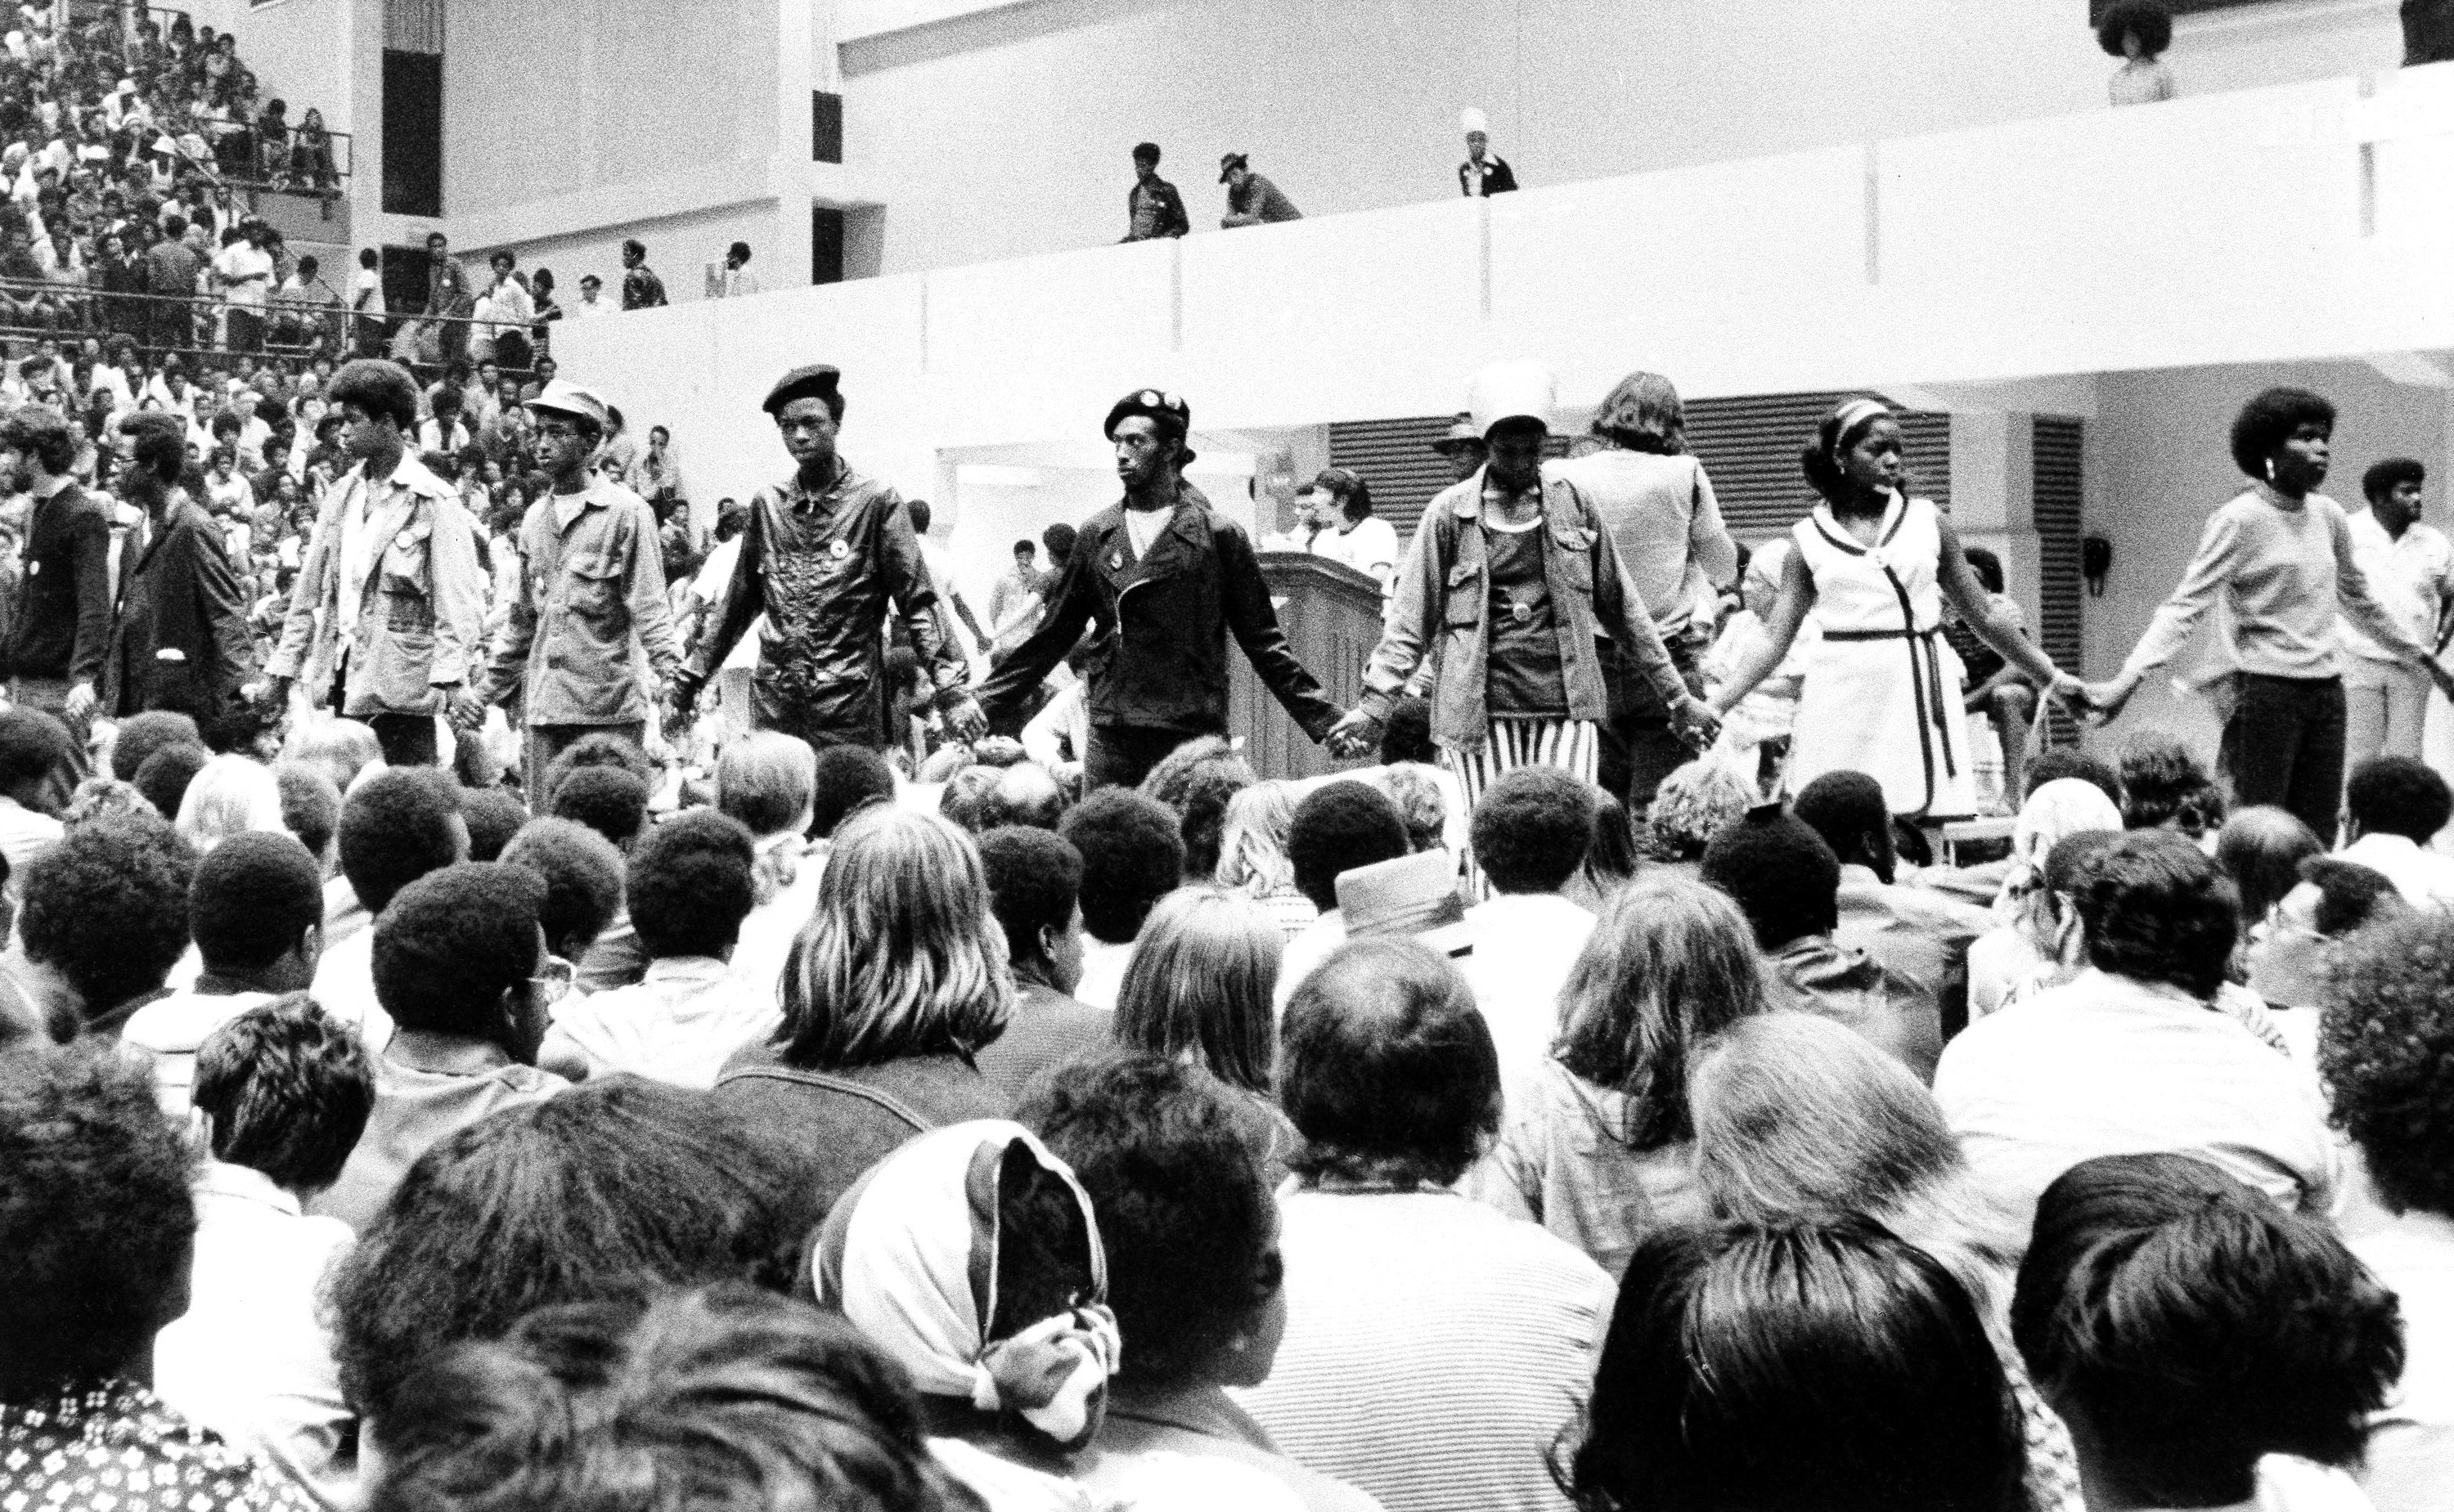 Security guard hold hands as they form a circle around the speakers platform during the Black Panthers conference in Philadelphia, Sept. 7, 1970. A crowd of about 6,000 persons filled McGonigle Hall, a gymnasium at Temple University to listen to the speeches.